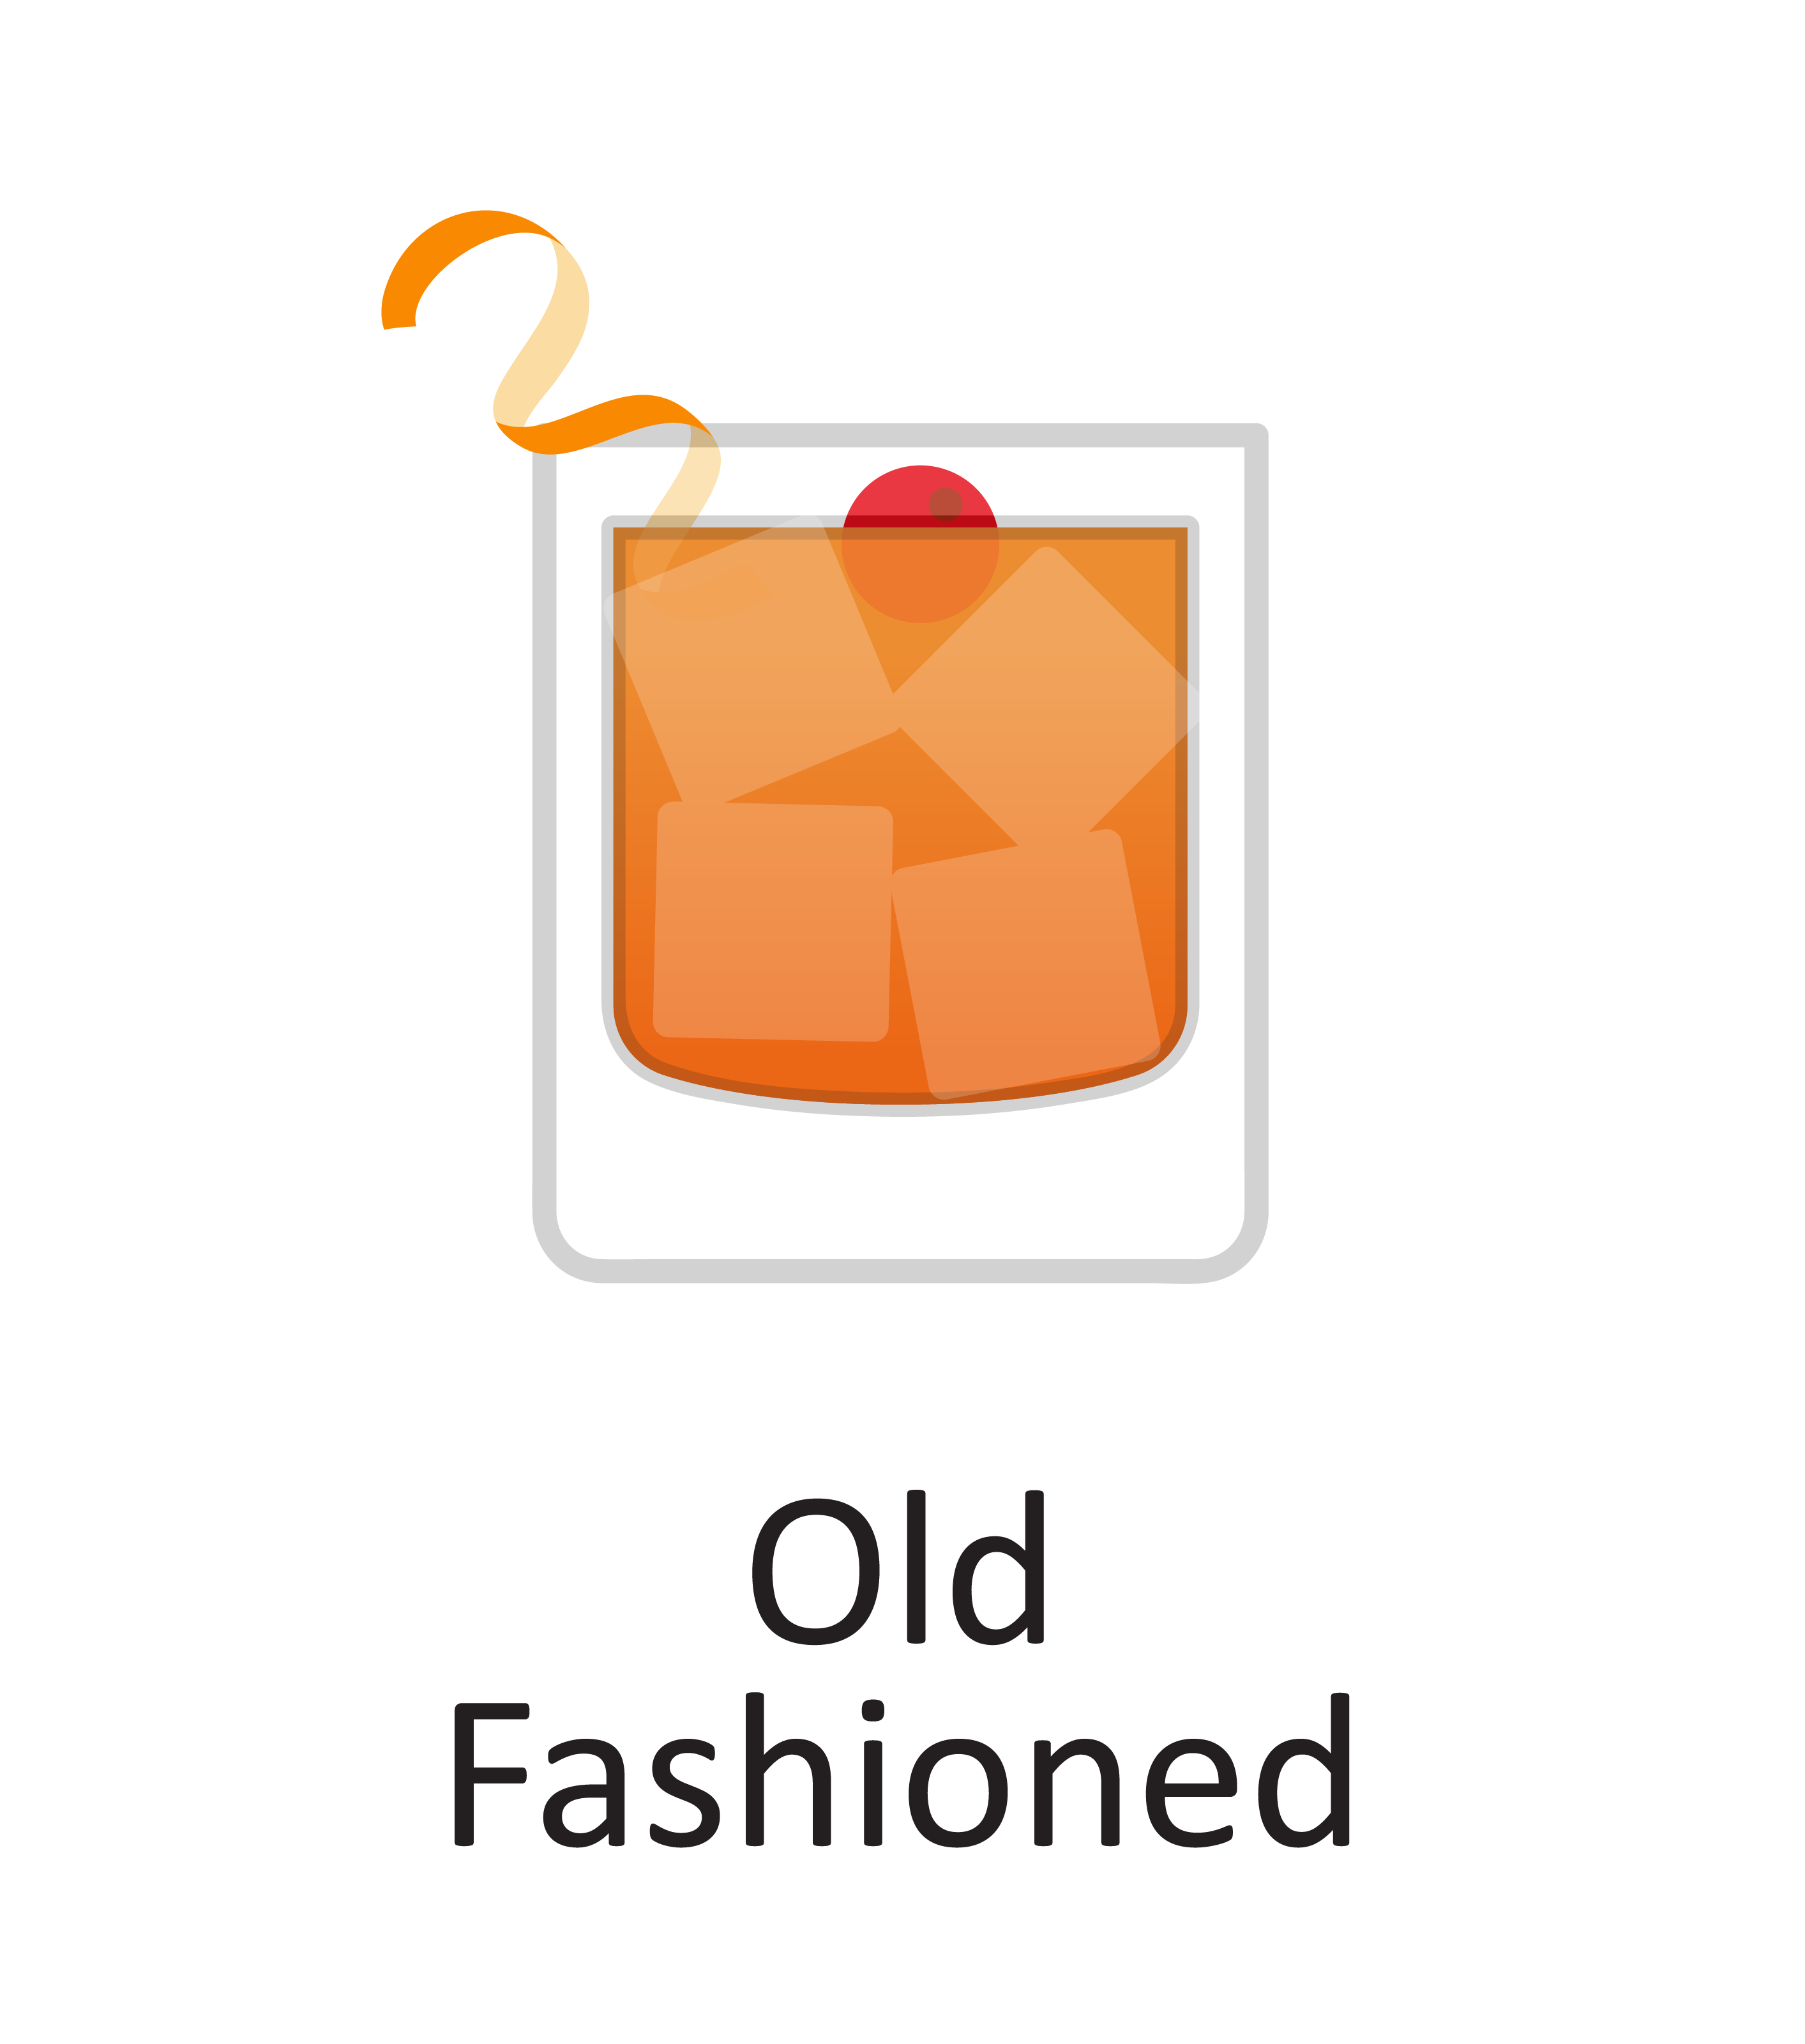 oldfashioned.png